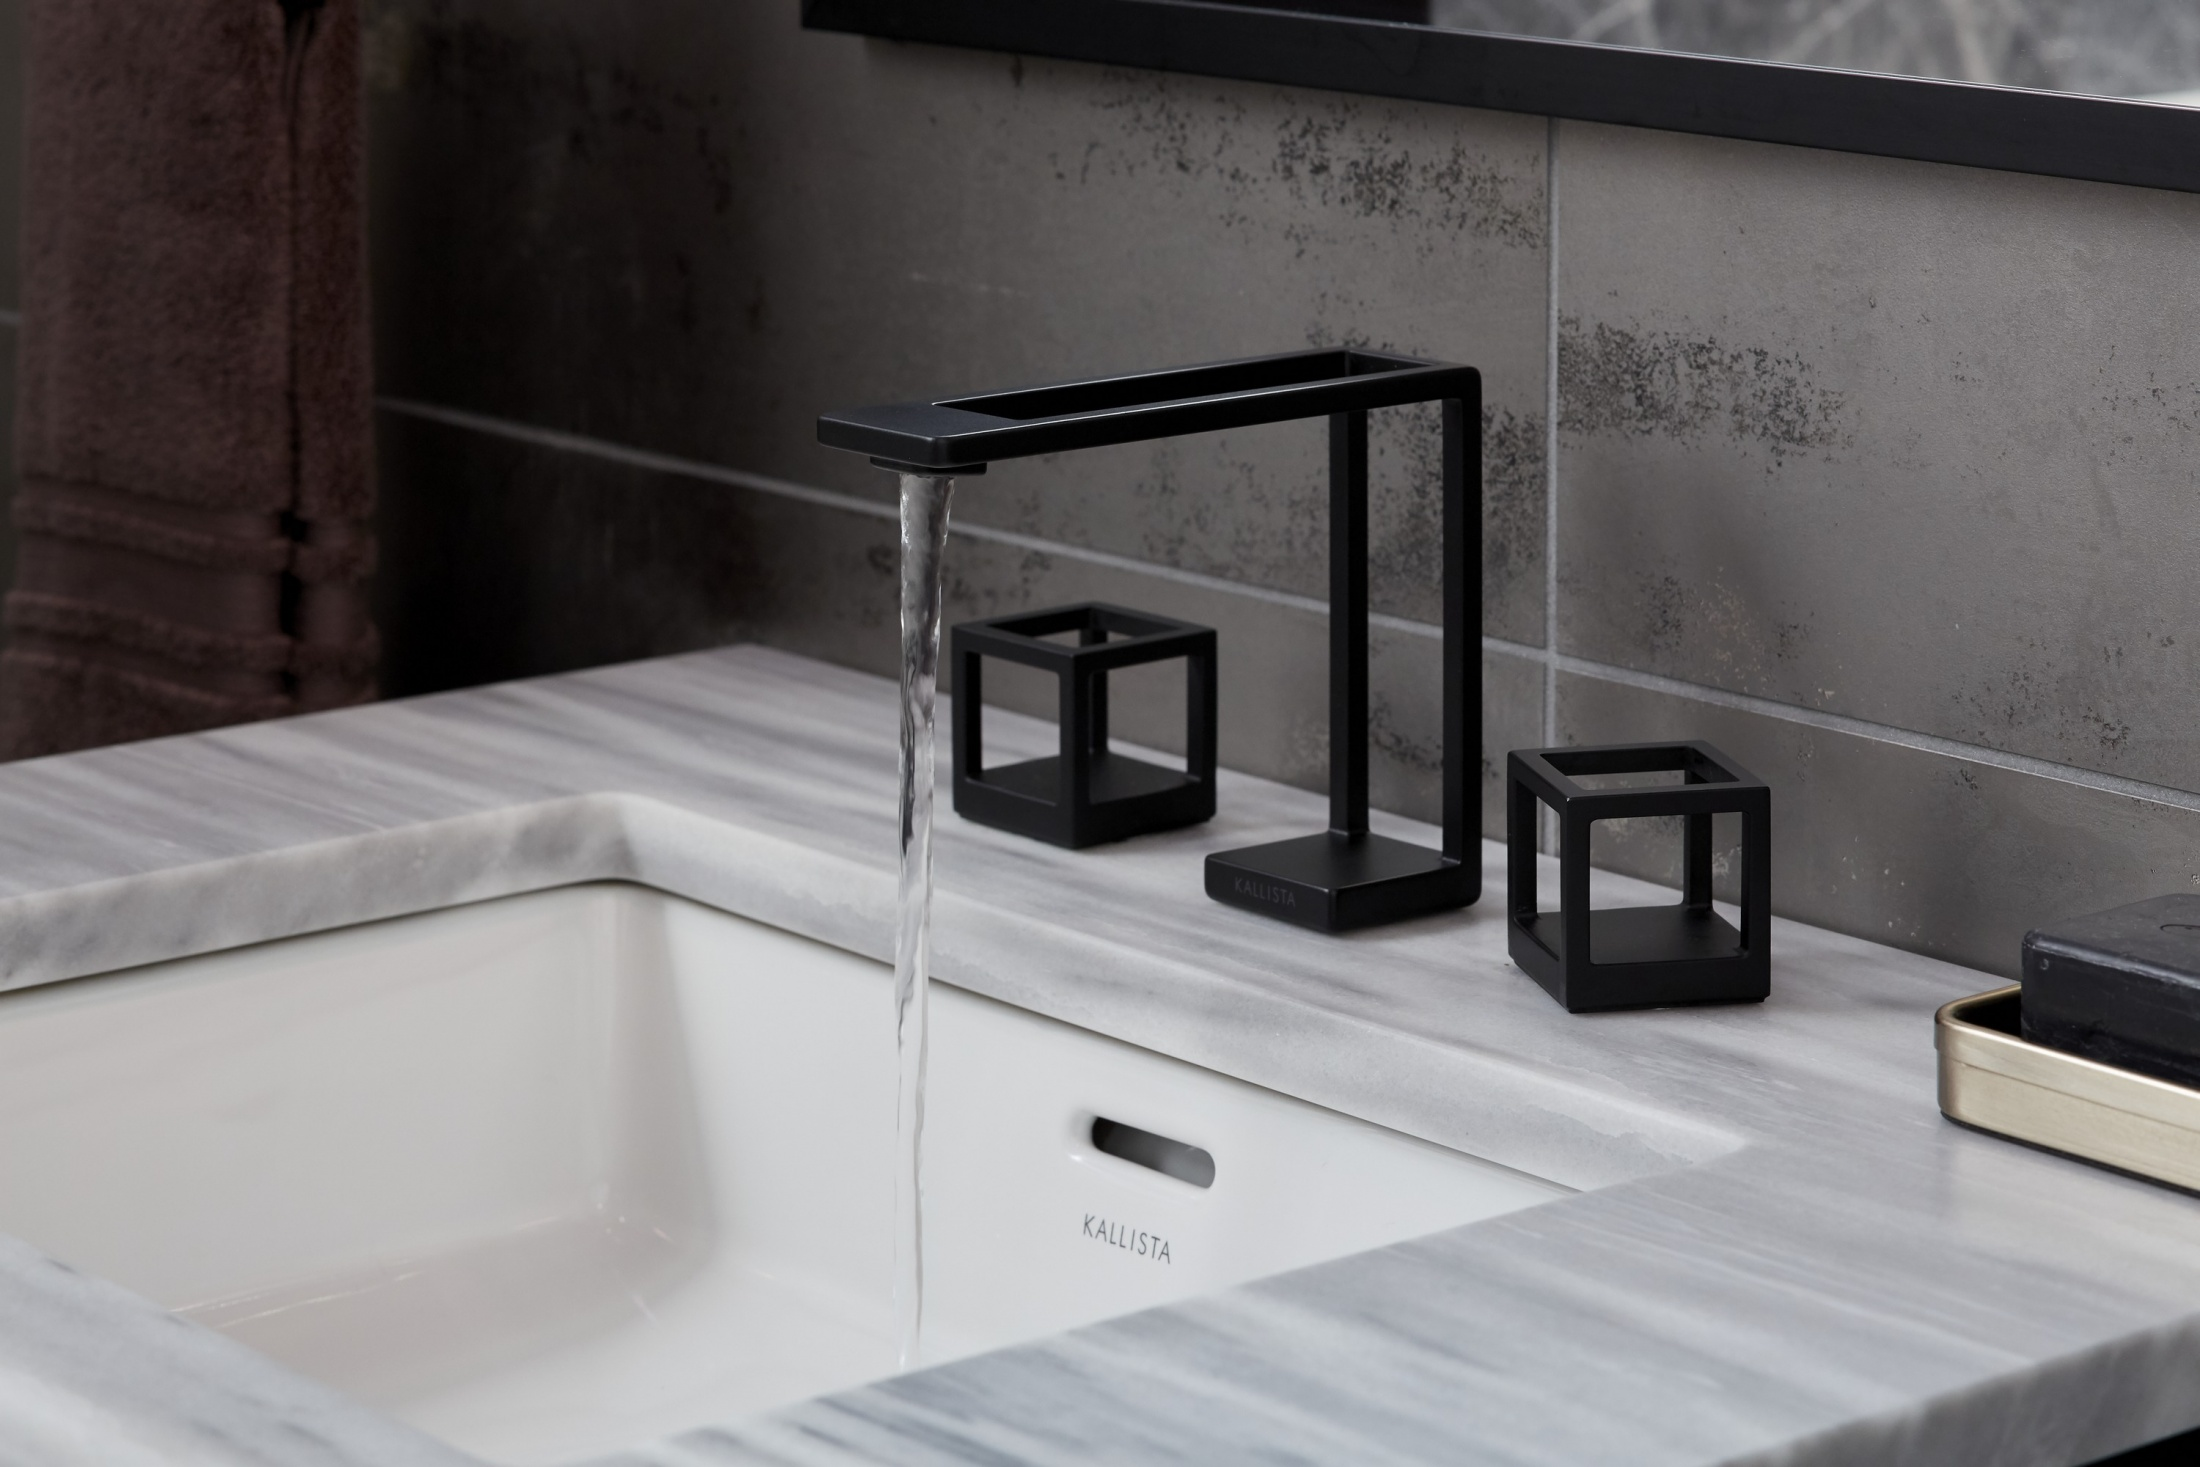 Thumbnail for KALLISTA Grid Sink Faucet and Cube Handles